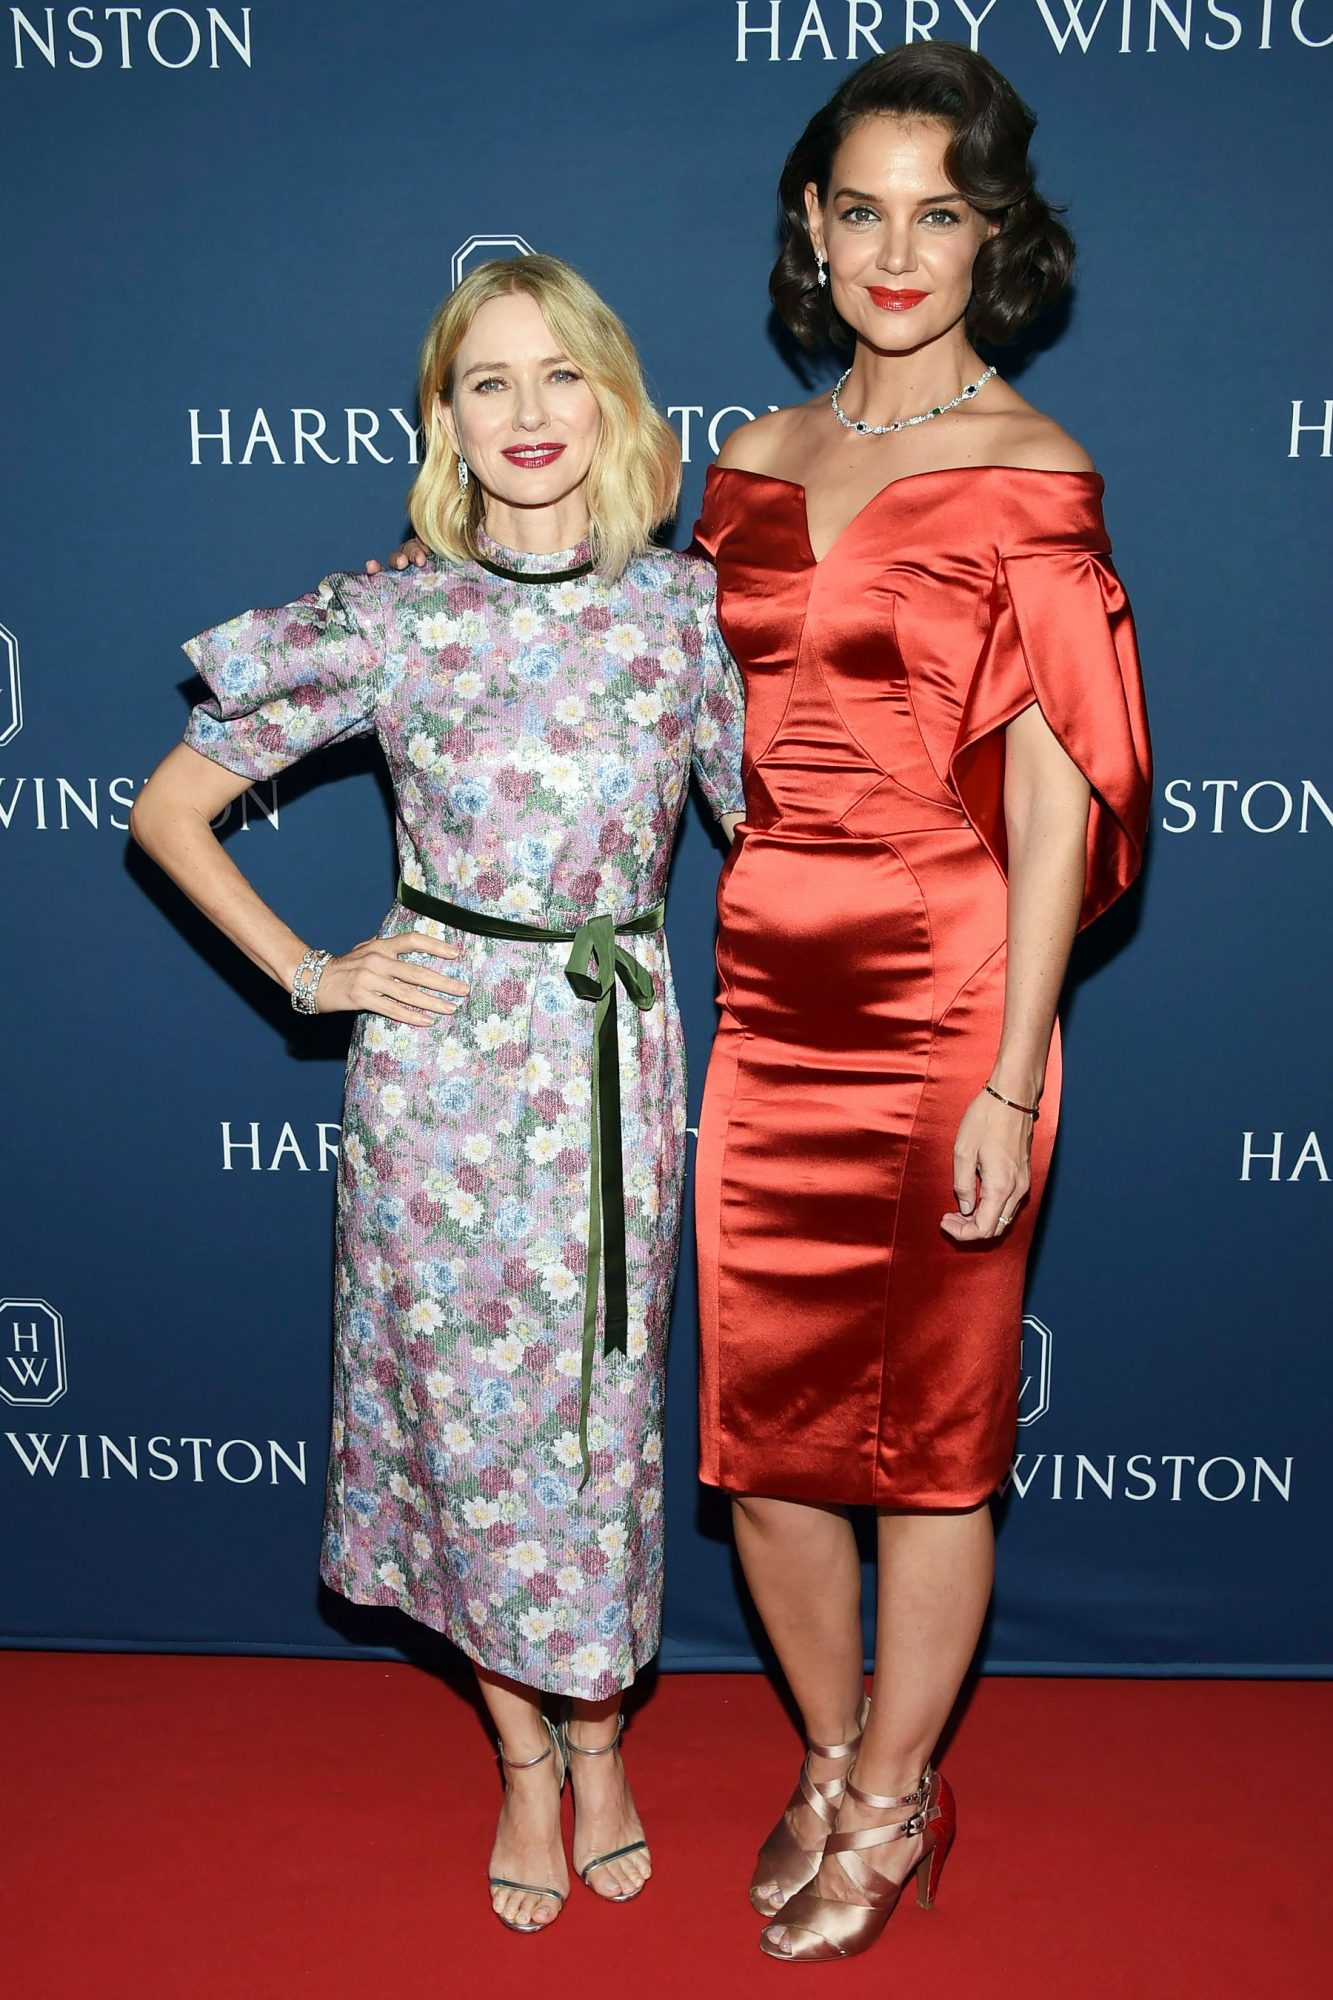 "The Harry Winston "" Collection"" Party, New York, USA - 20 Sep 2018"